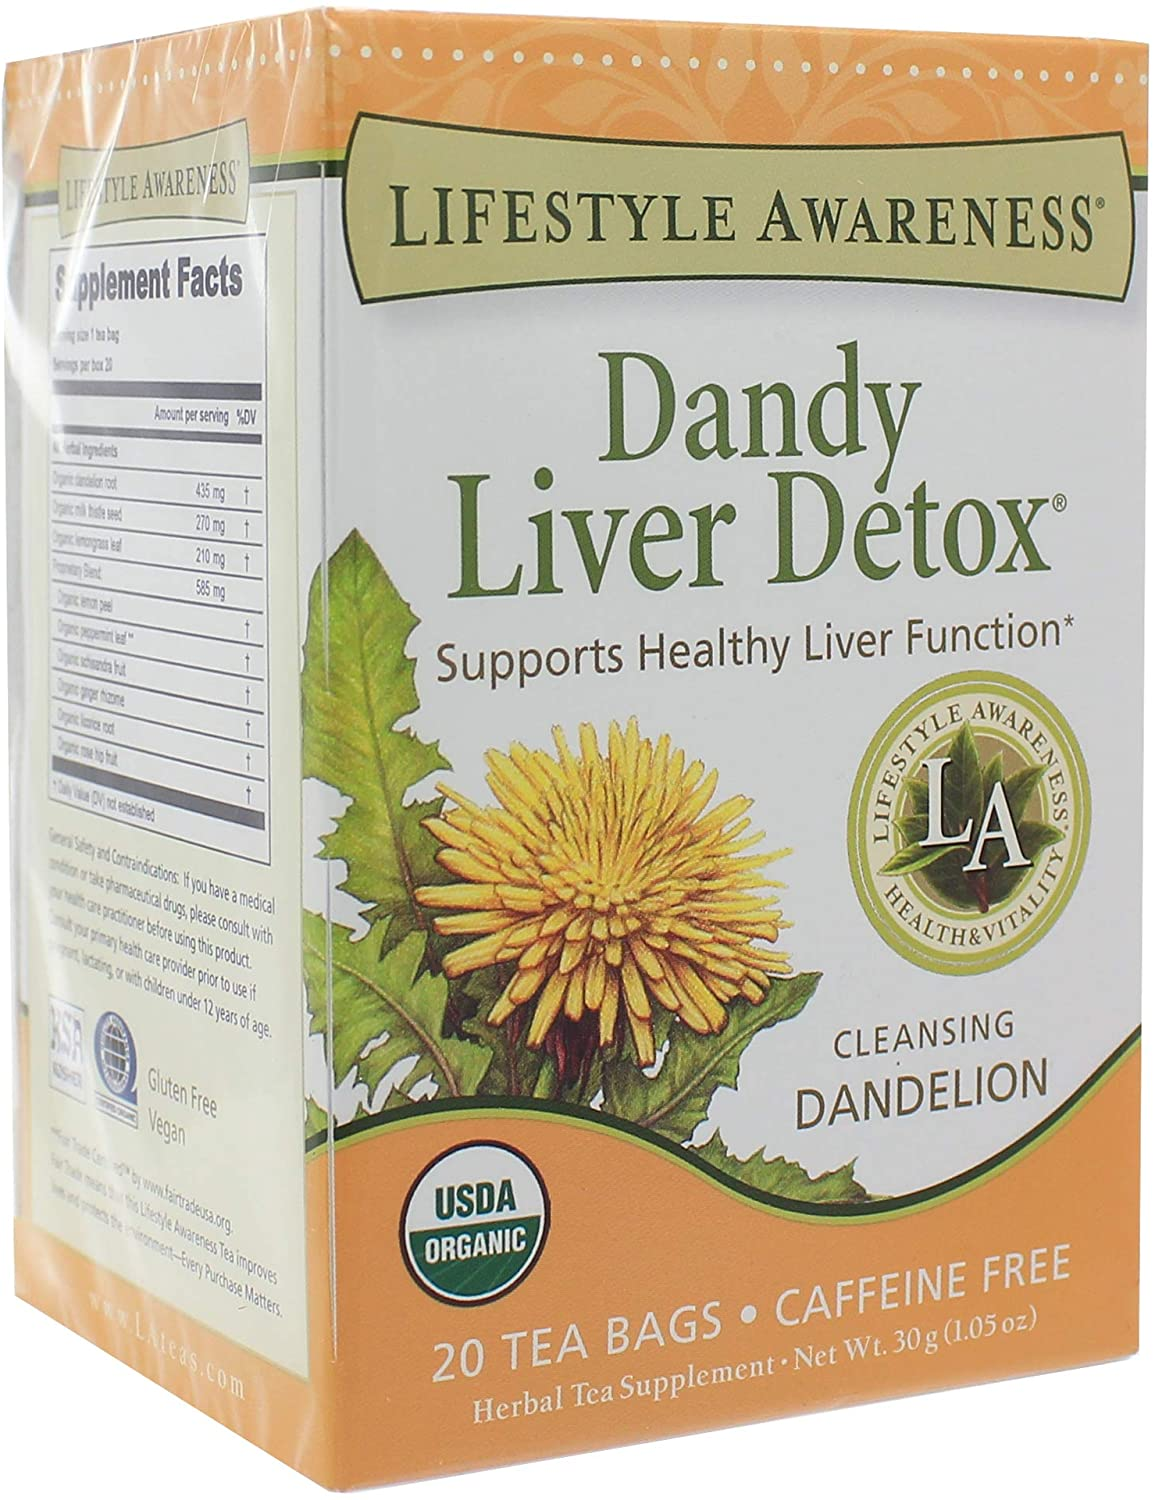 Lifestyle Awareness Teas, Dandy Liver Detox, 20 Tea Bags